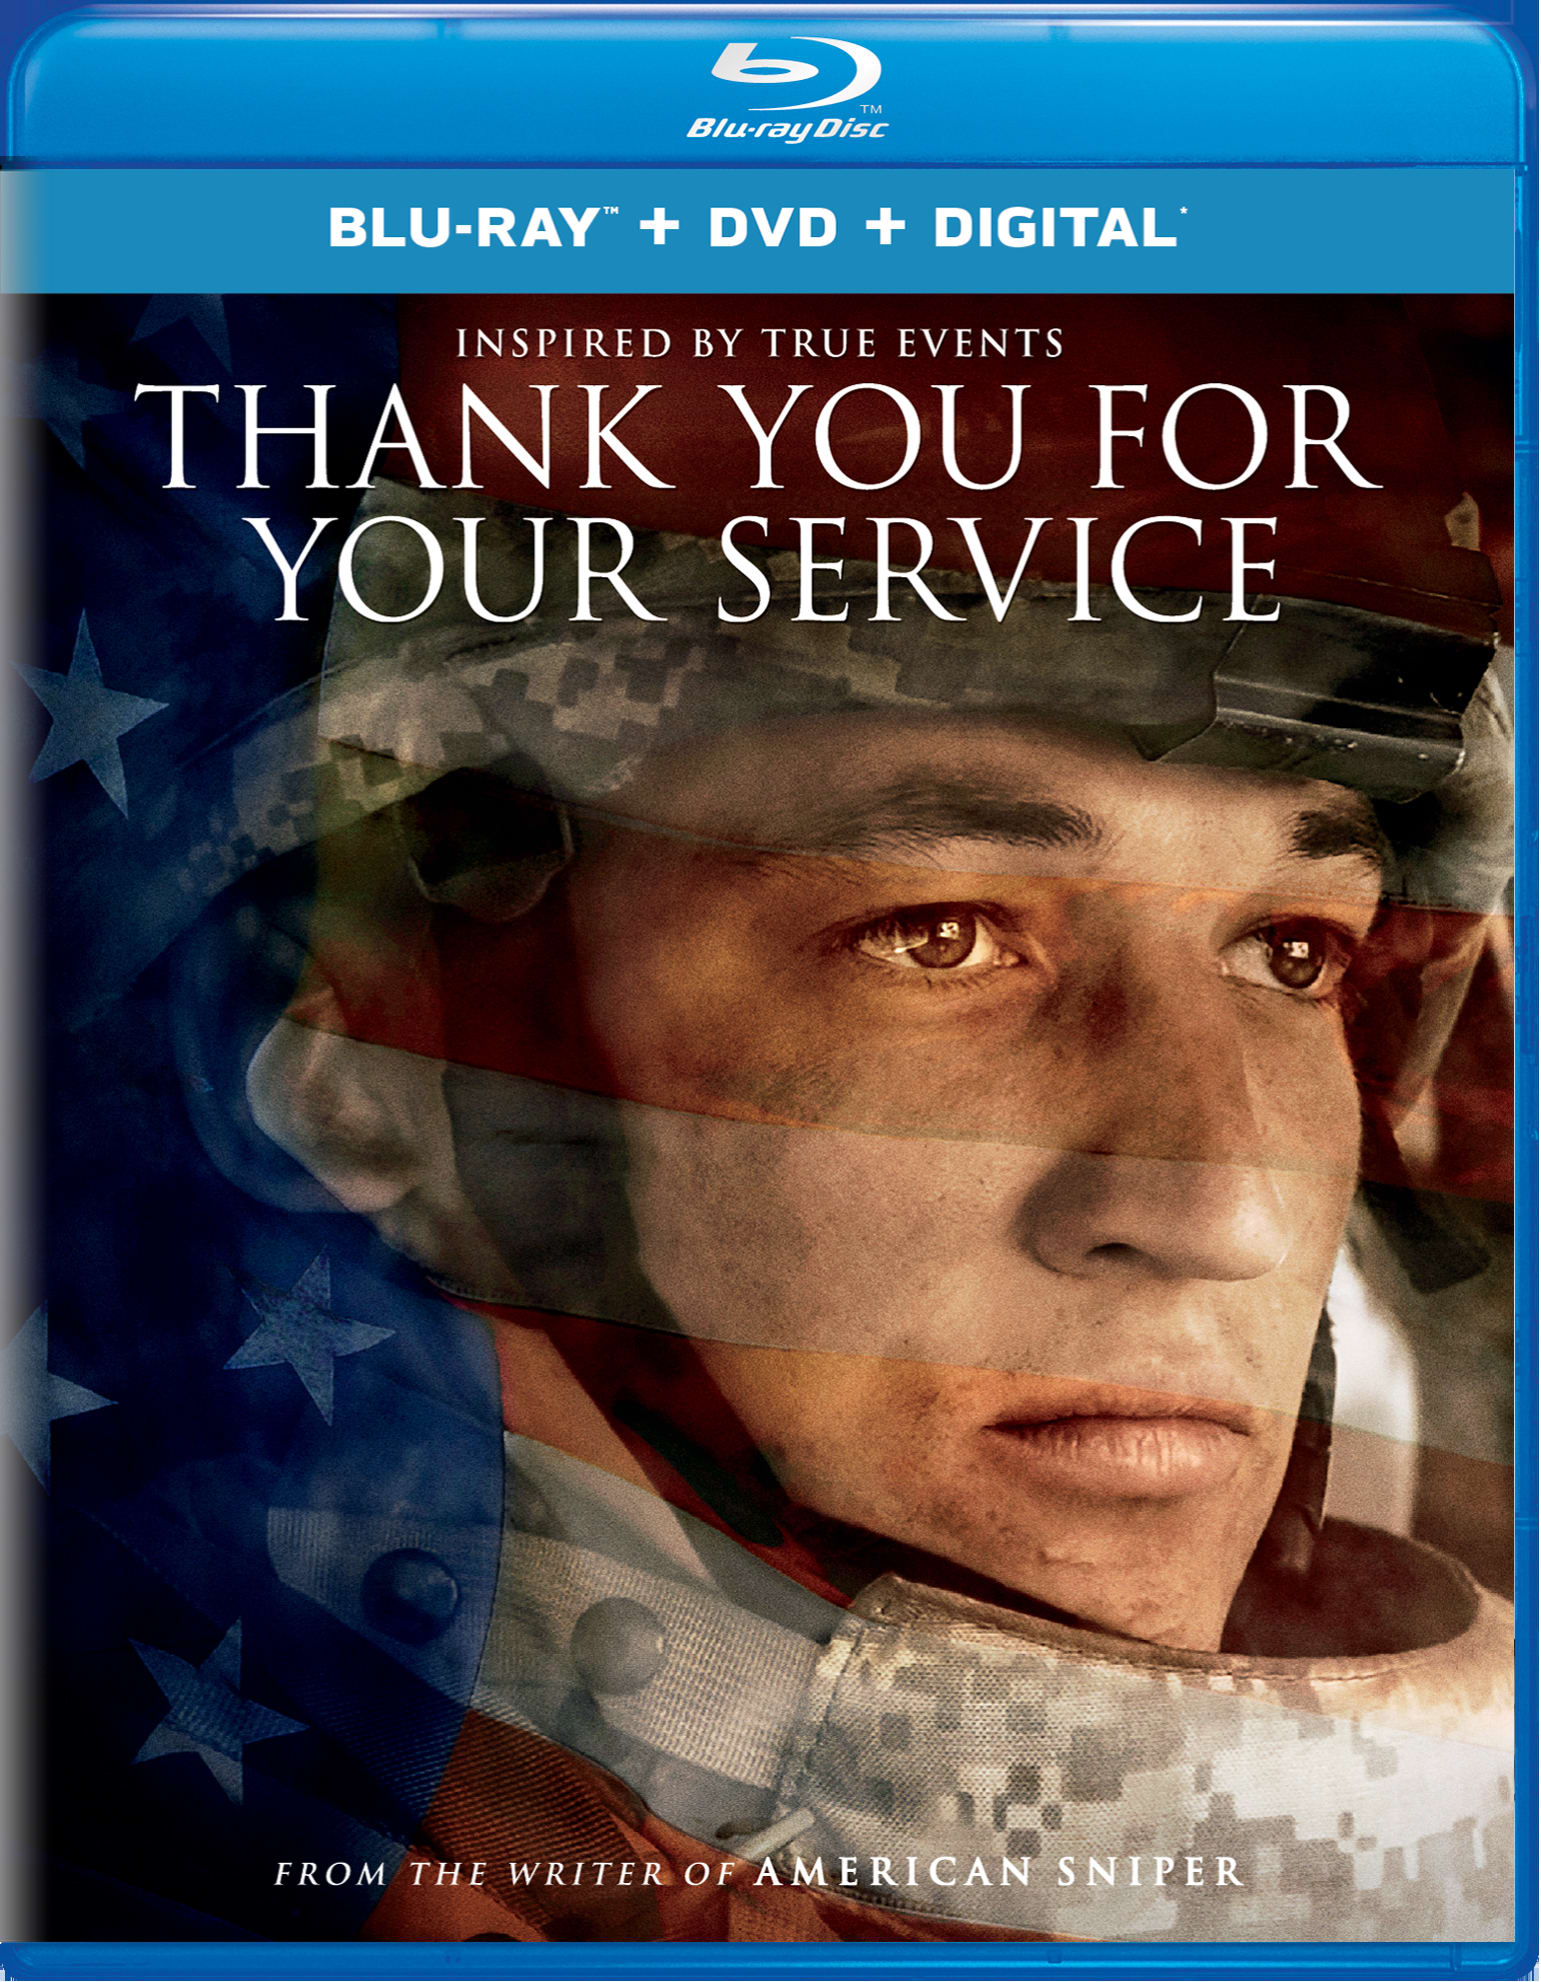 Thank You for Your Service (DVD + Digital) [Blu-ray]